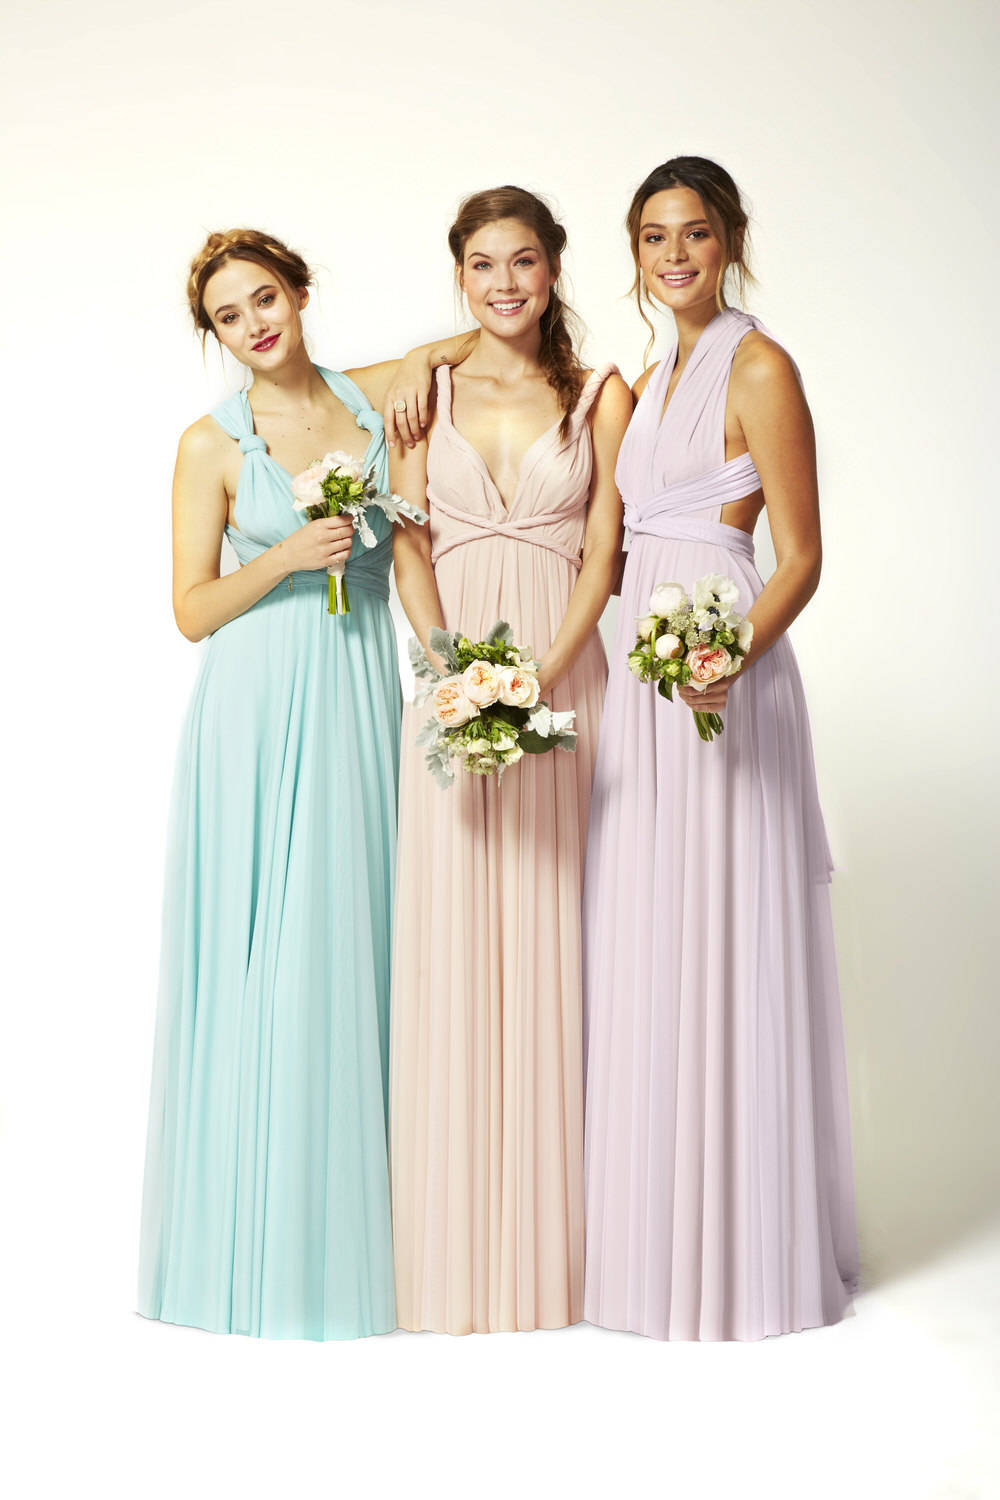 Twobirds rock my wedding uk wedding blog directory tulle multiway ballgowns in seafoam petal lilac ombrellifo Image collections